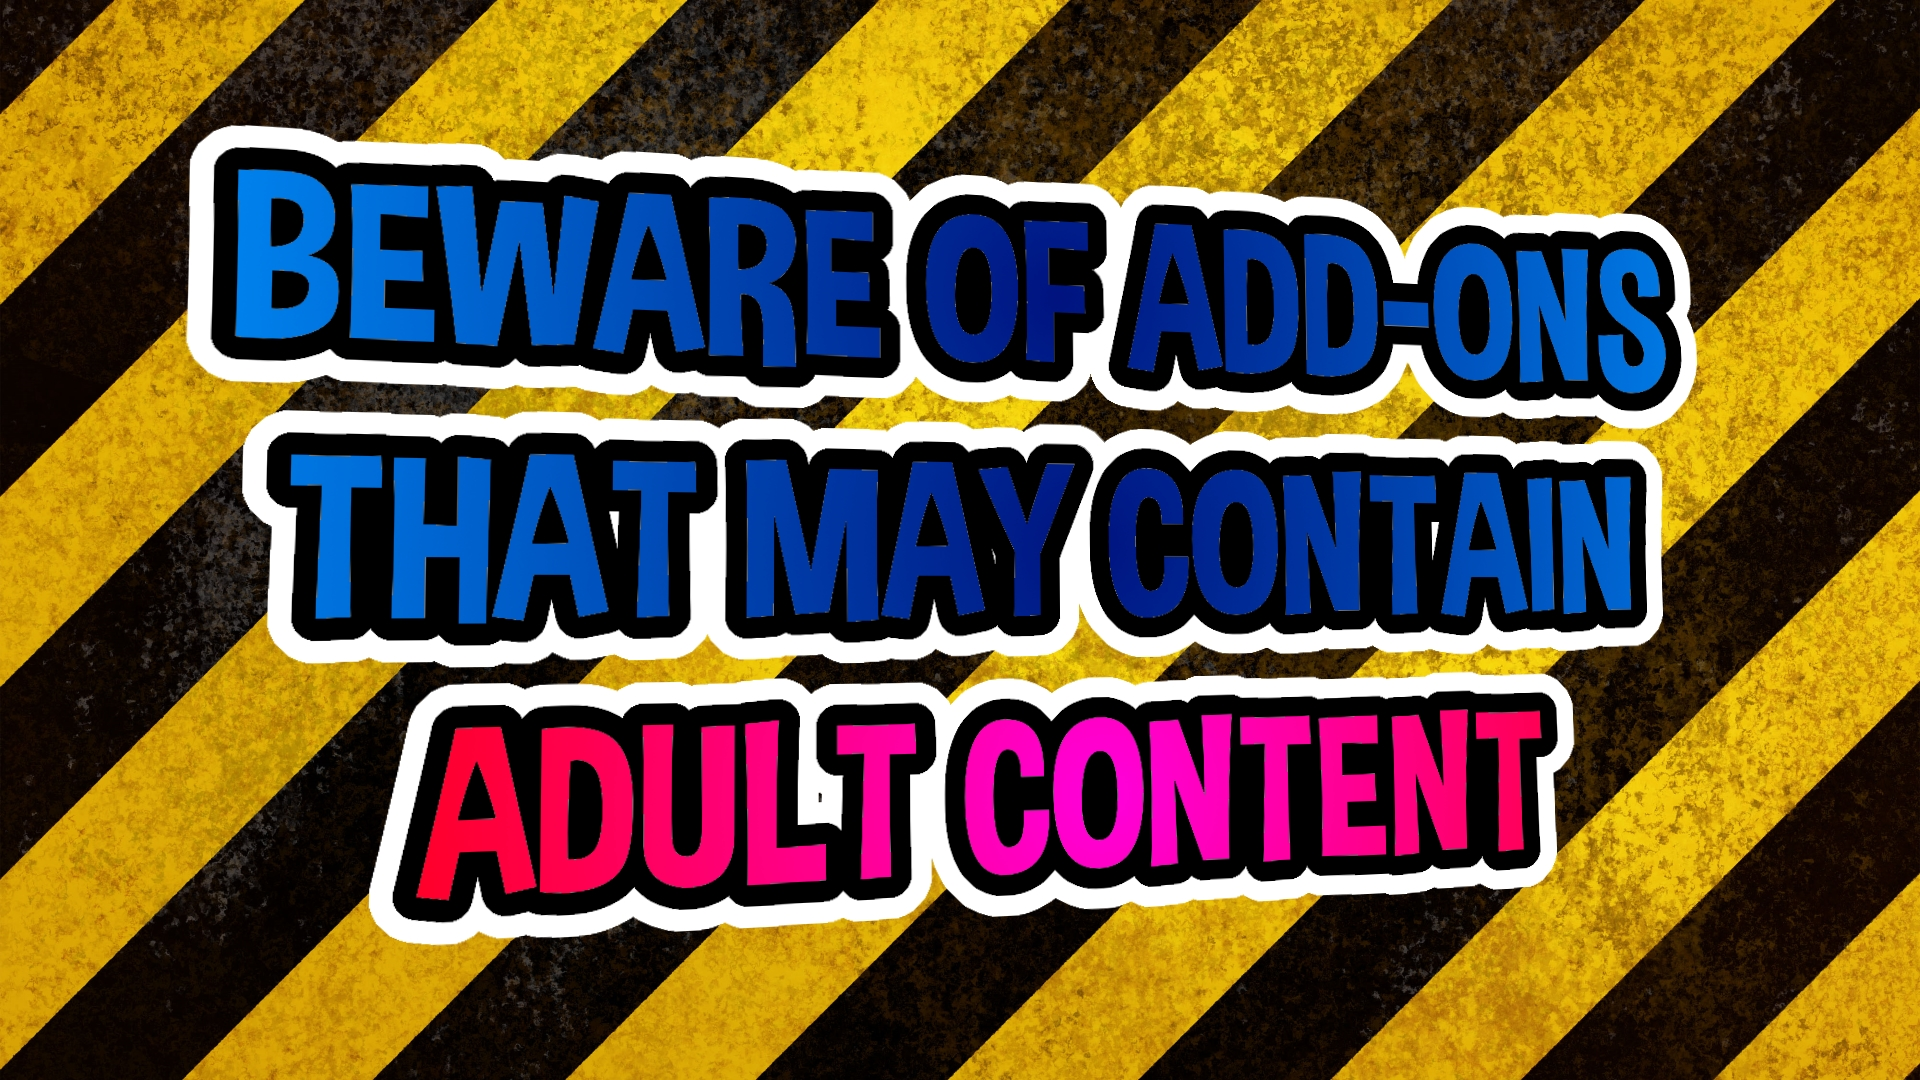 May contain adult content forum